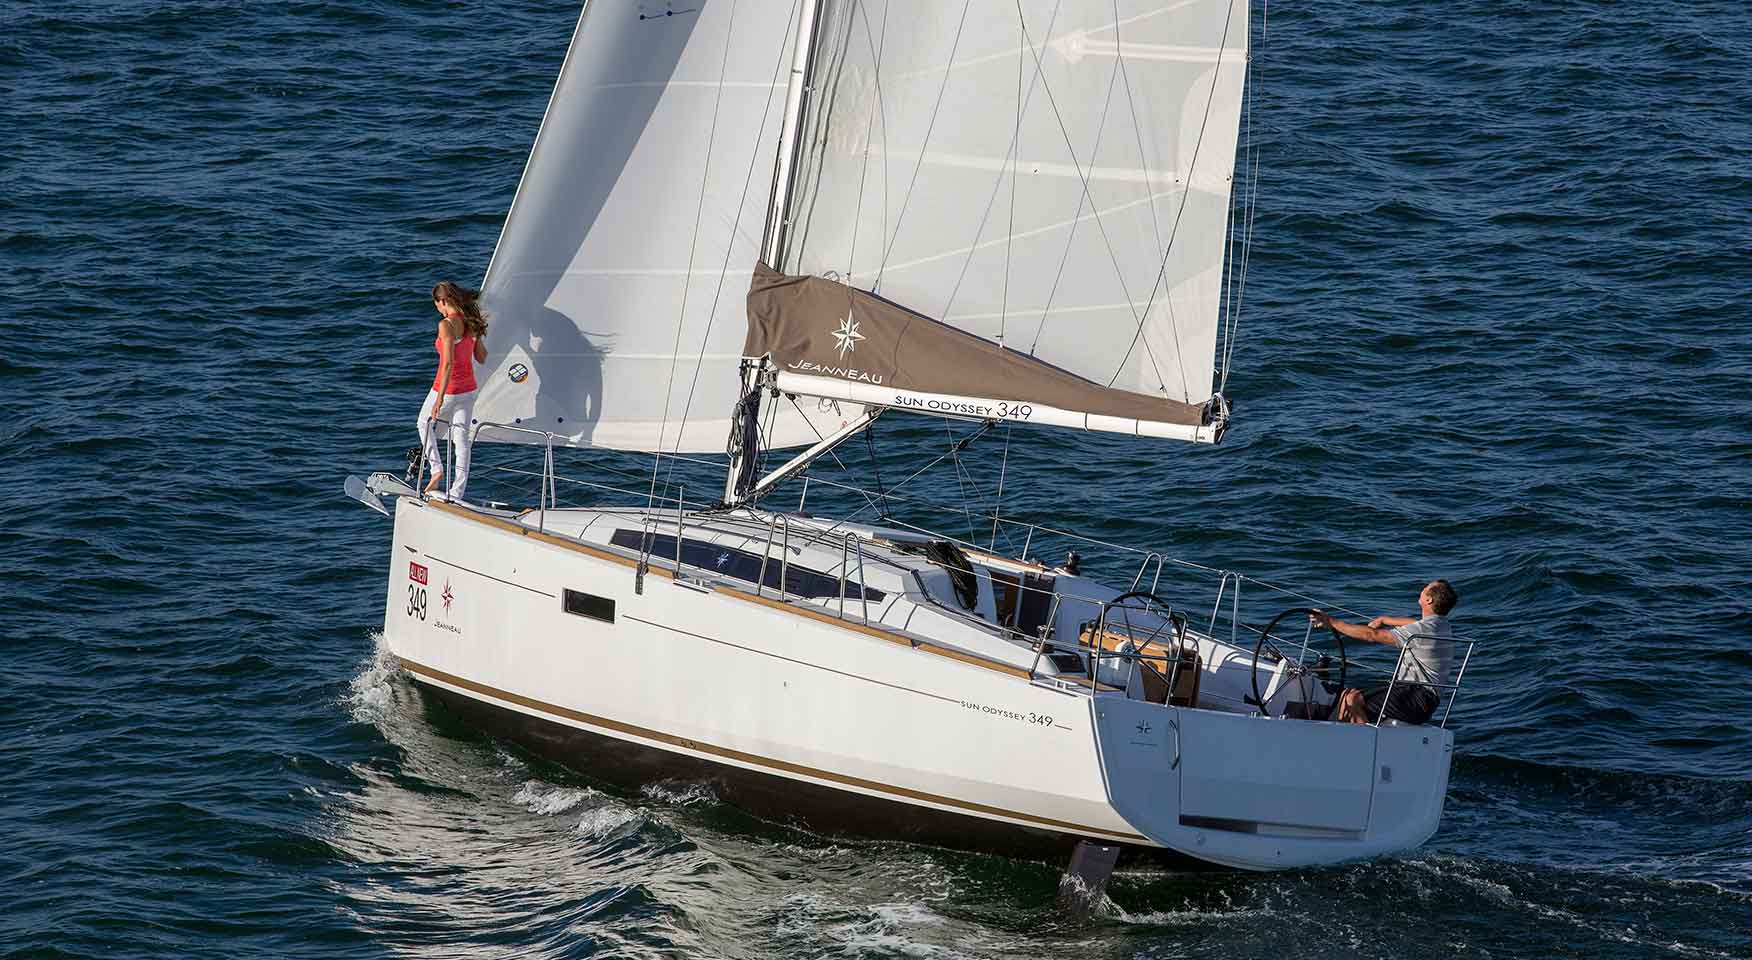 Jeanneau Sun Odyssey 349 Yacht charters in Cyprus by Latchi Charters